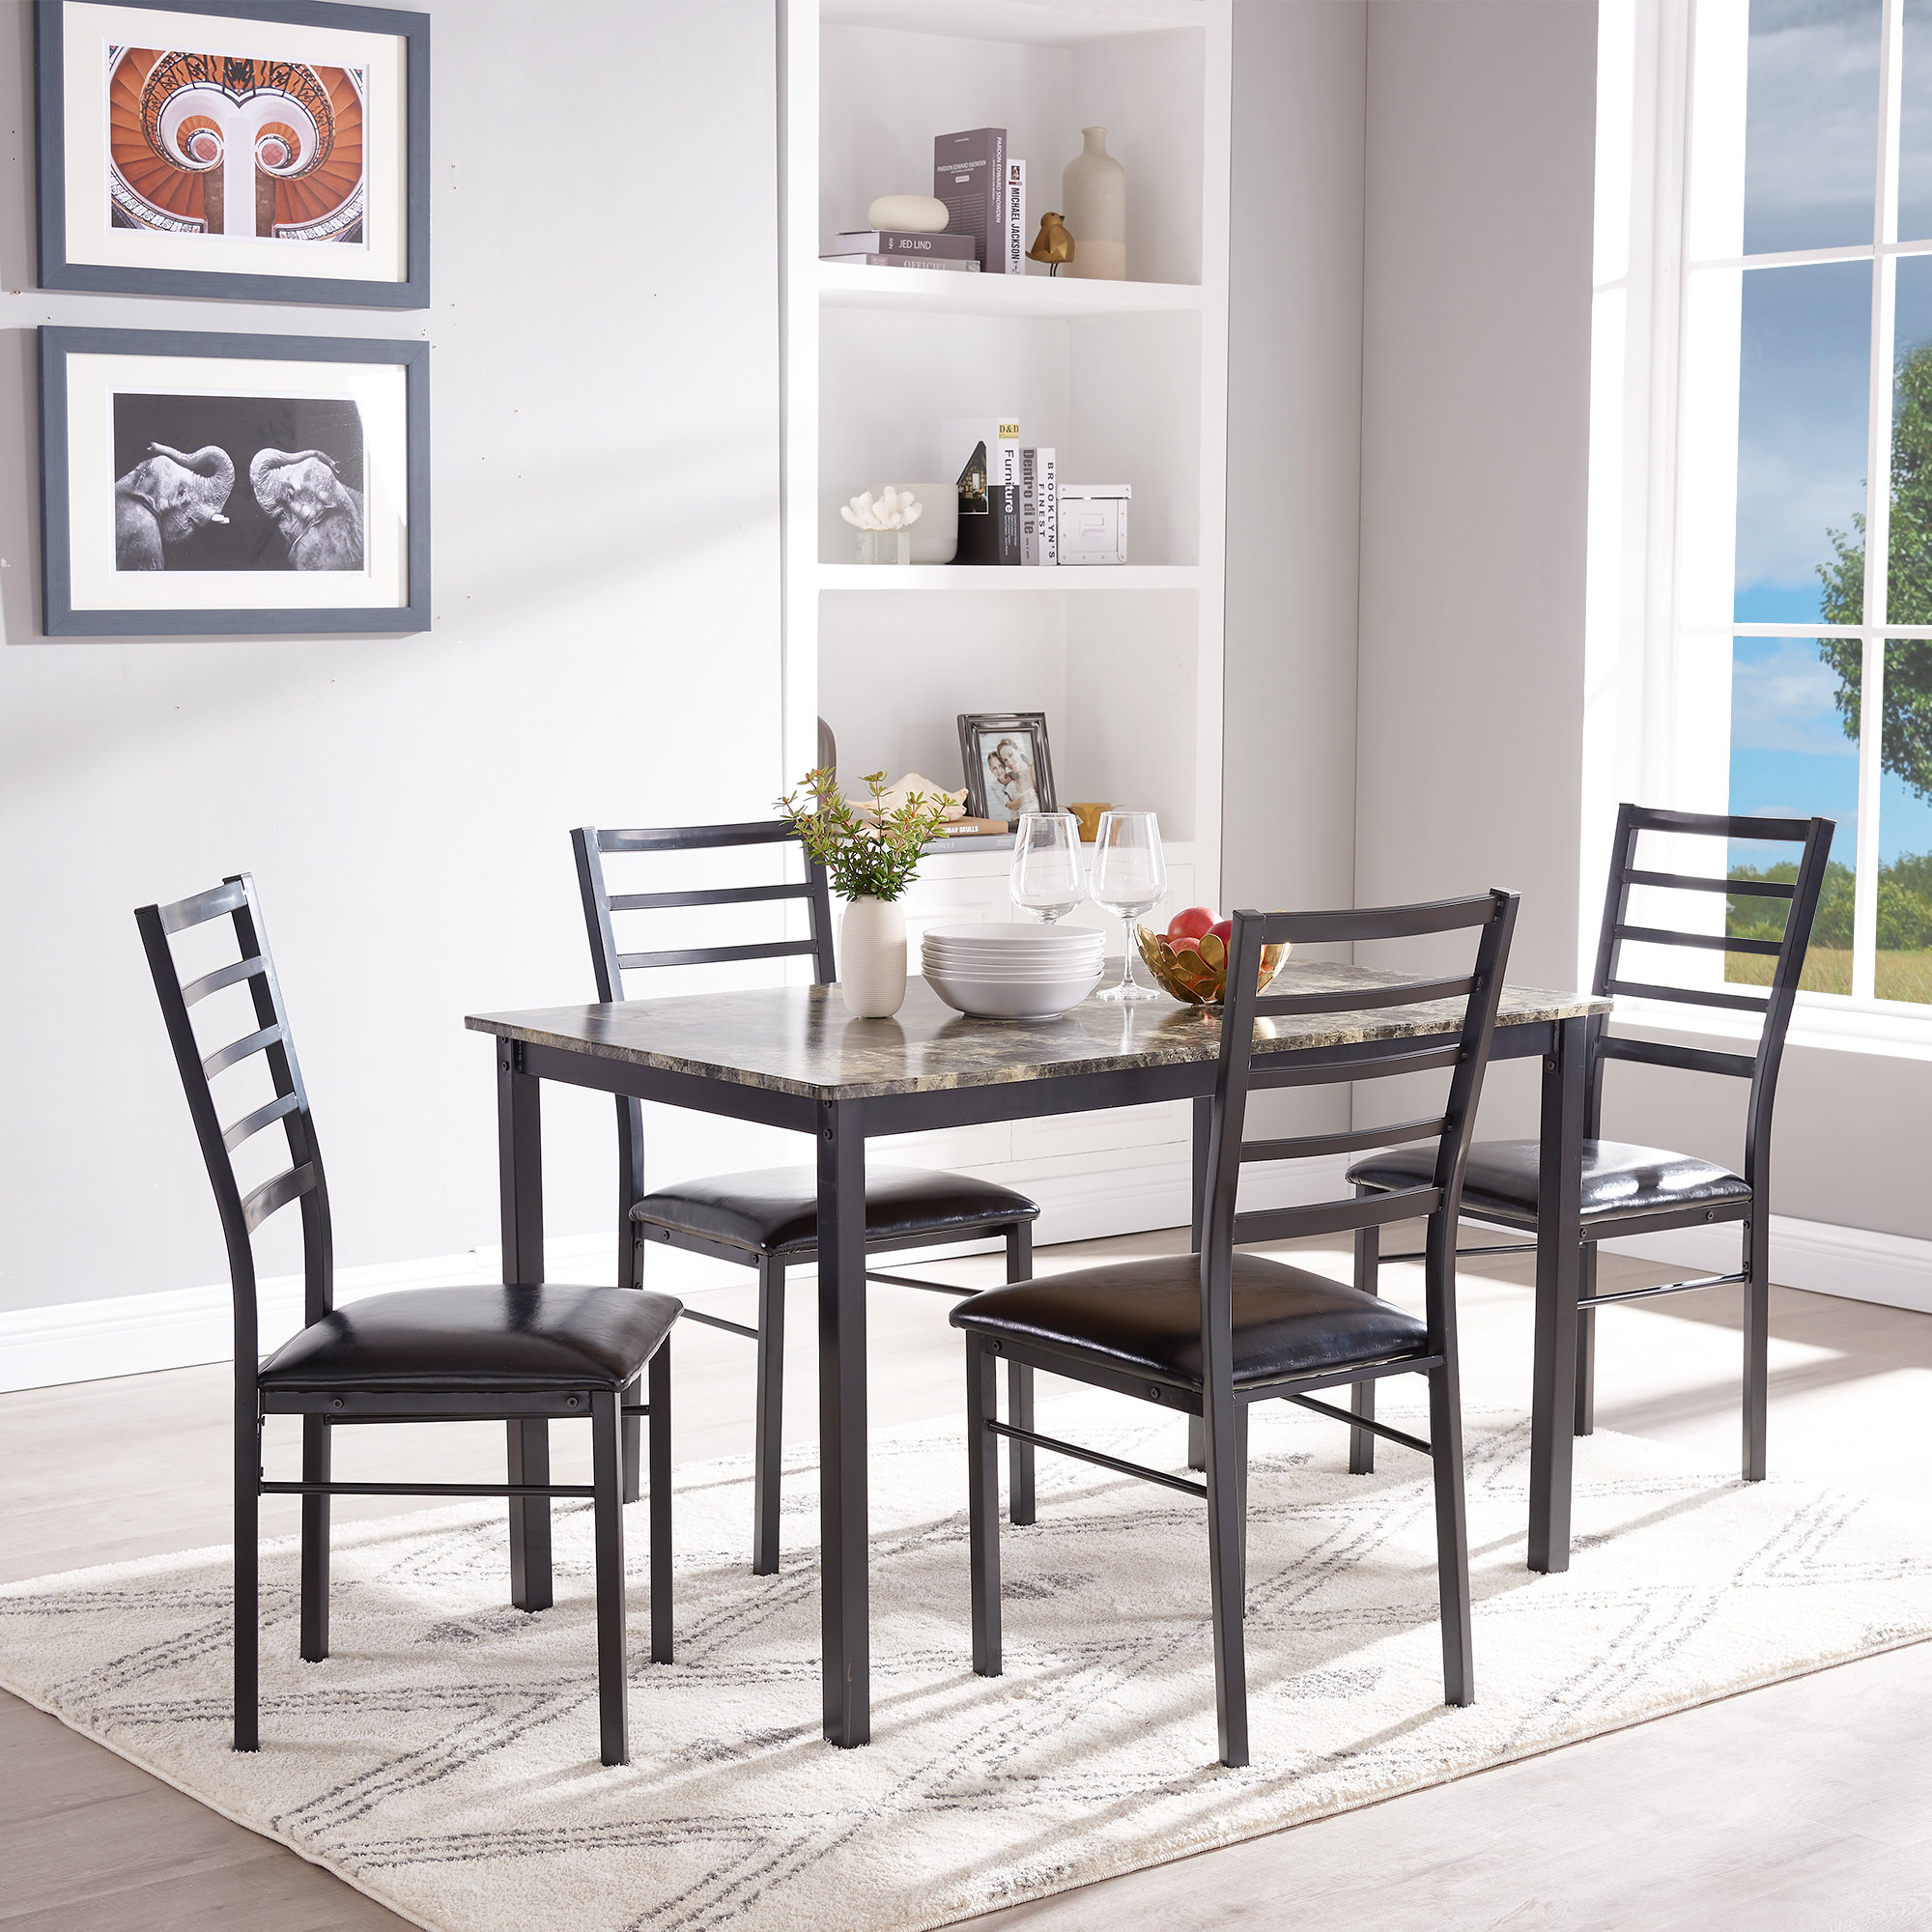 Details About Winston Porter Mukai 5 Piece Dining Set With Regard To Latest Presson 3 Piece Counter Height Dining Sets (Image 6 of 20)